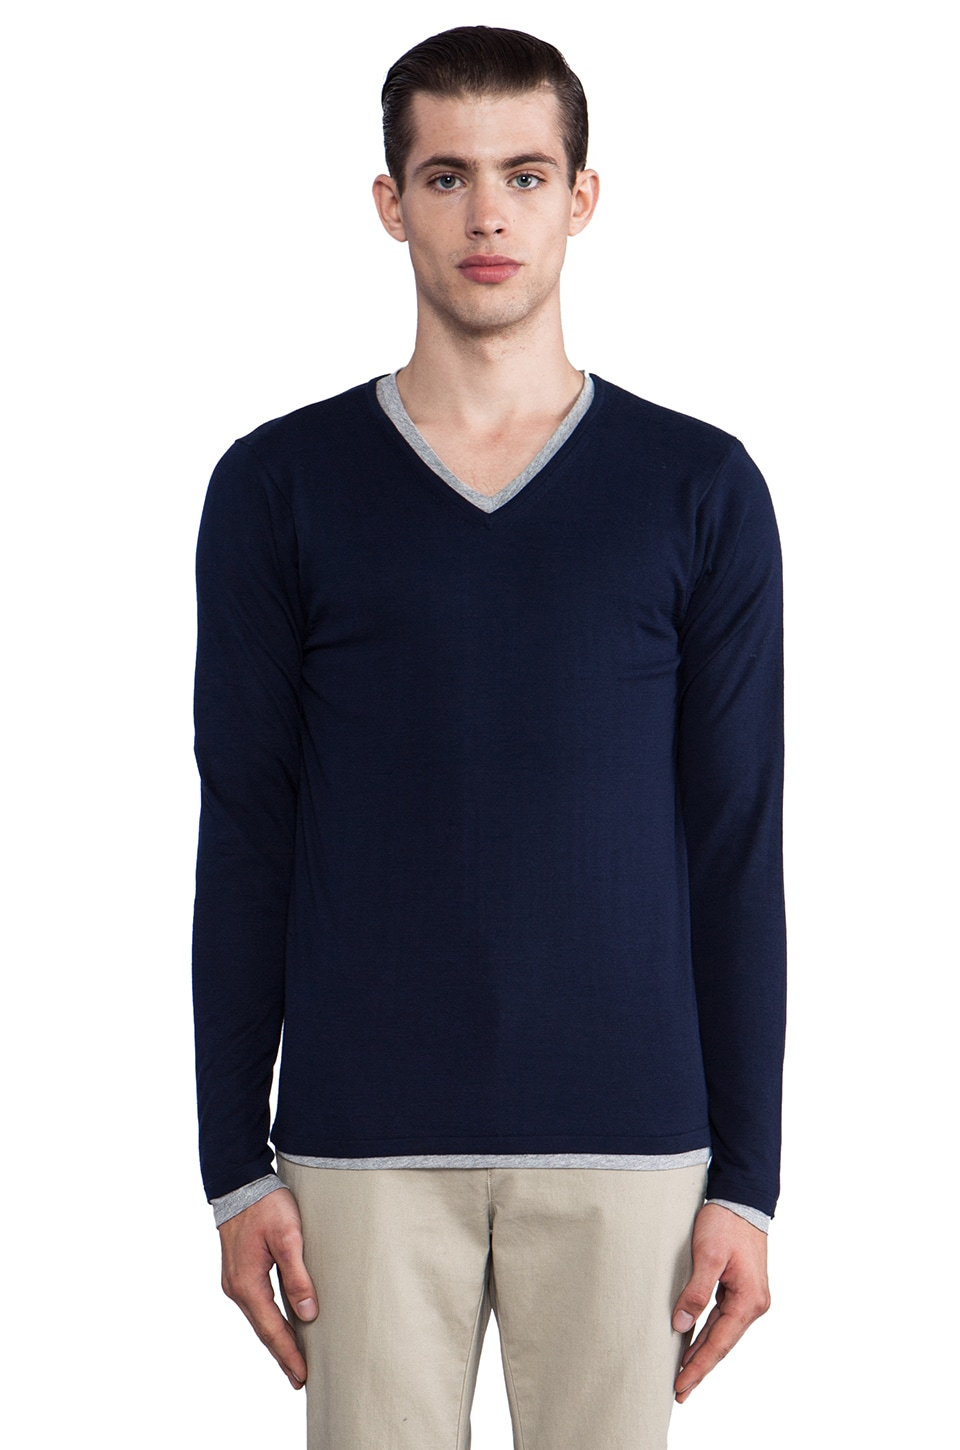 Scotch & Soda V Neck Sweater w/ Inner Tee in Ink